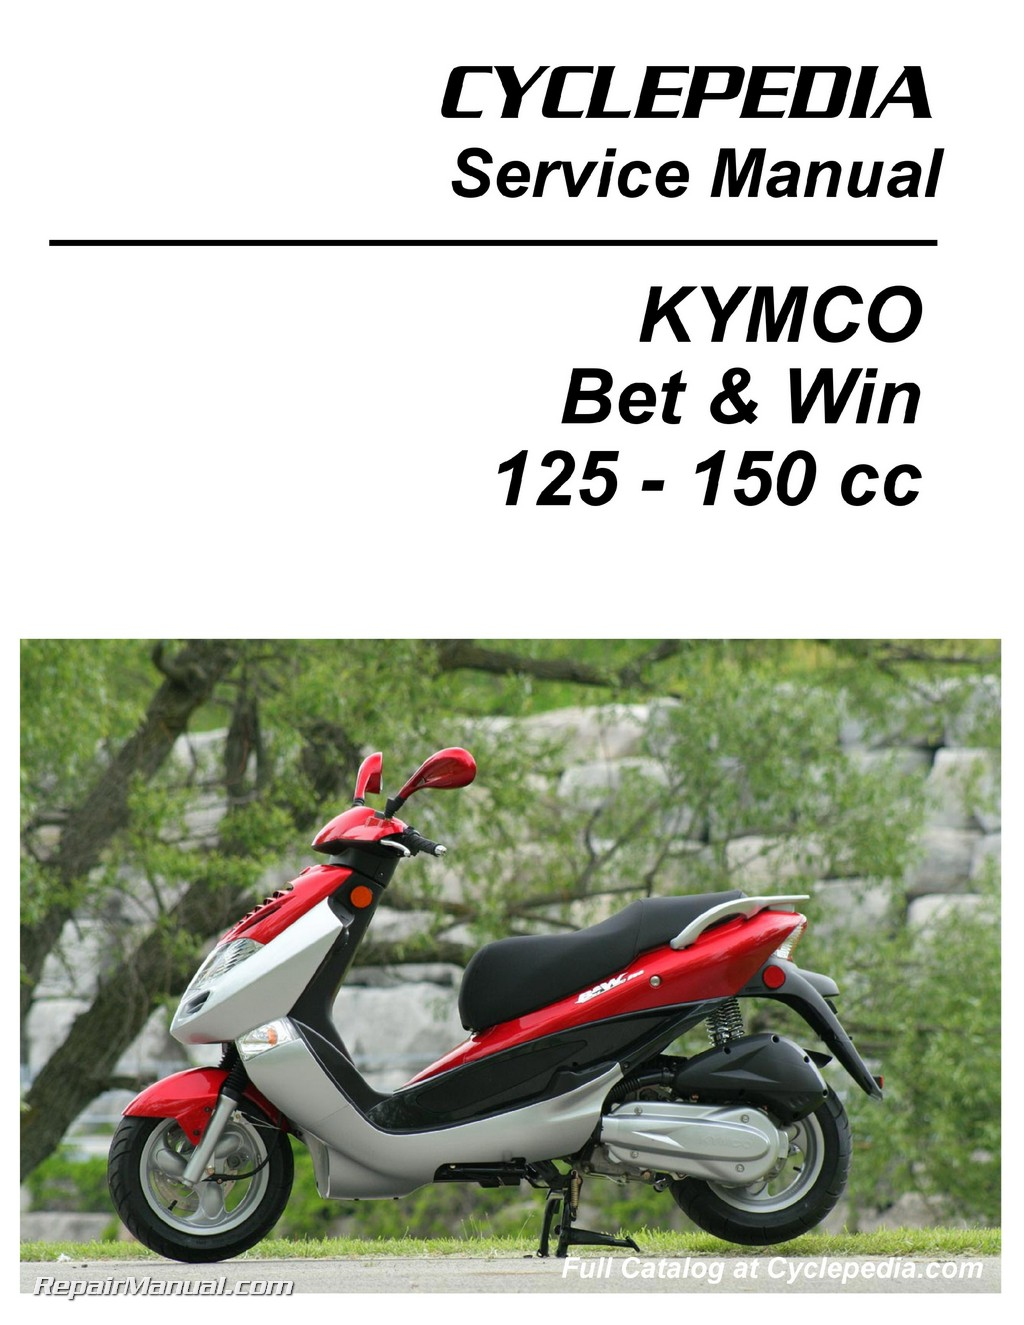 manual kymco bet win